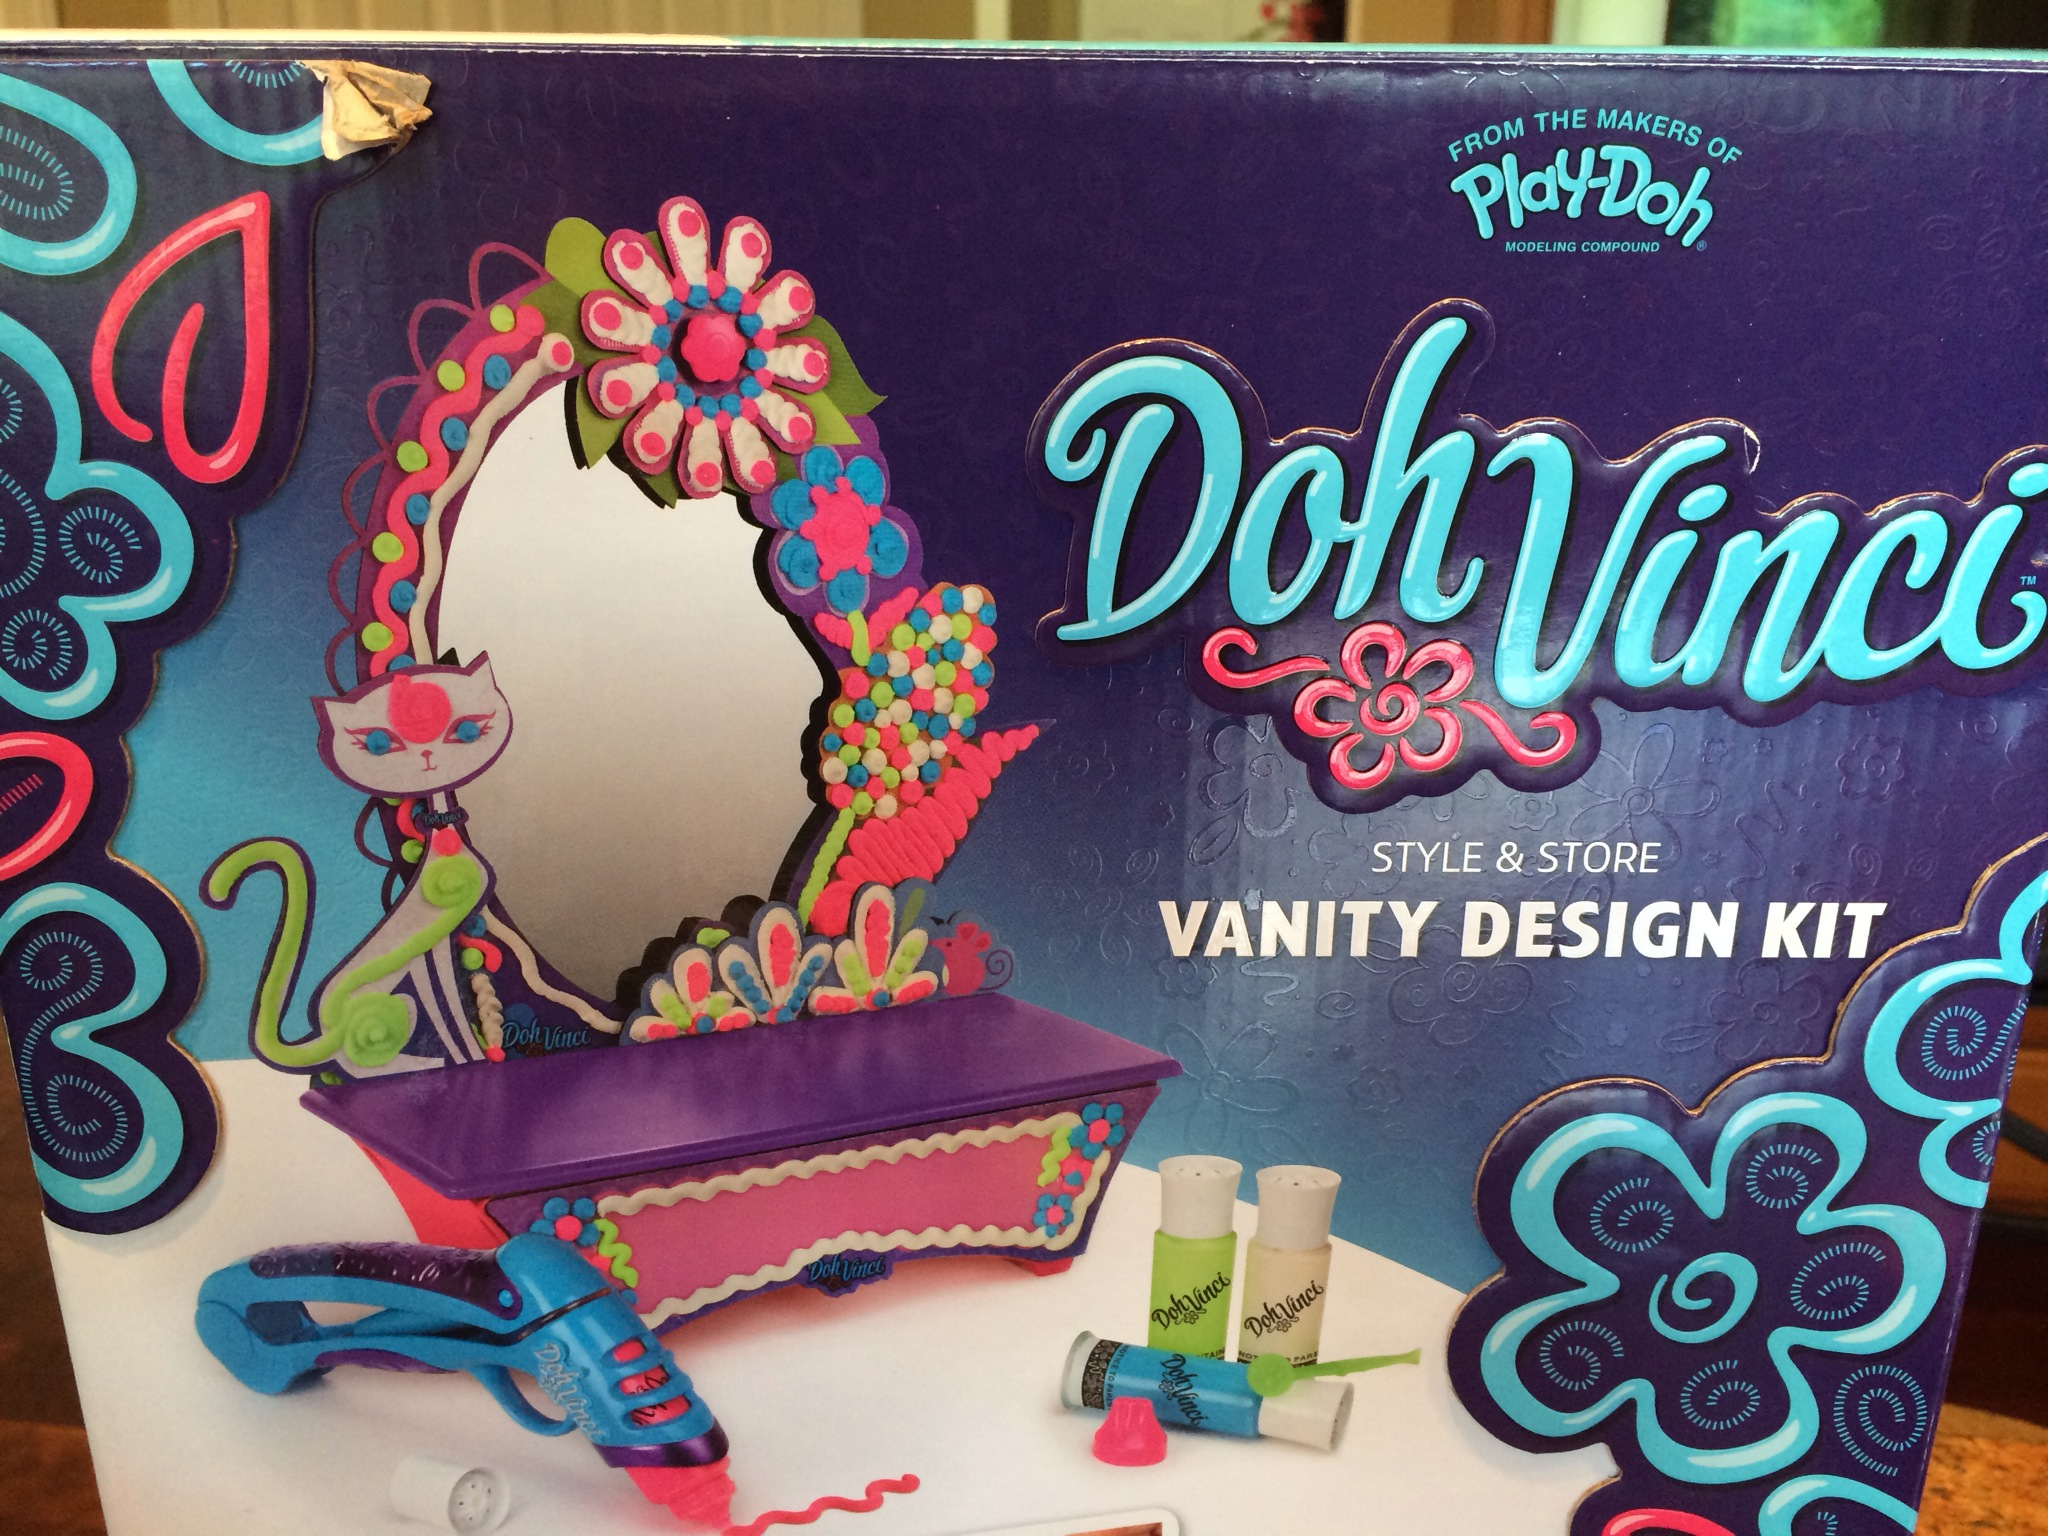 Doh vinci vanity set video review - Hasbro a7197eu4 doh vinci specchio vanity ...